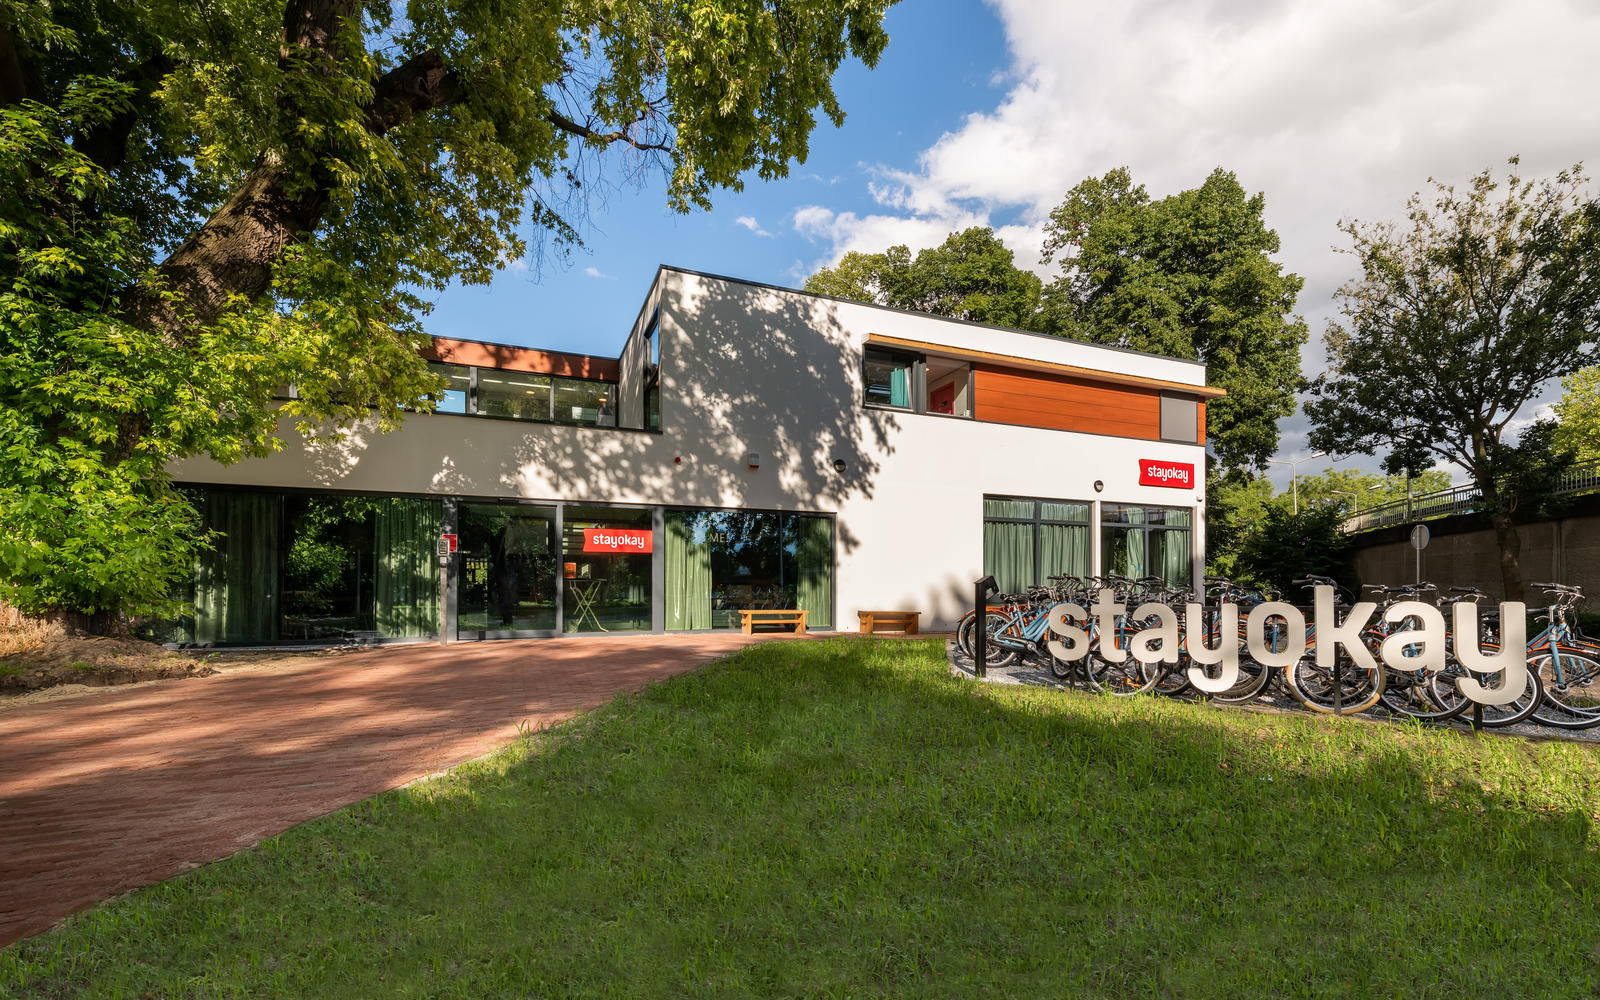 The Stayokay Hotel in Maastricht renovation